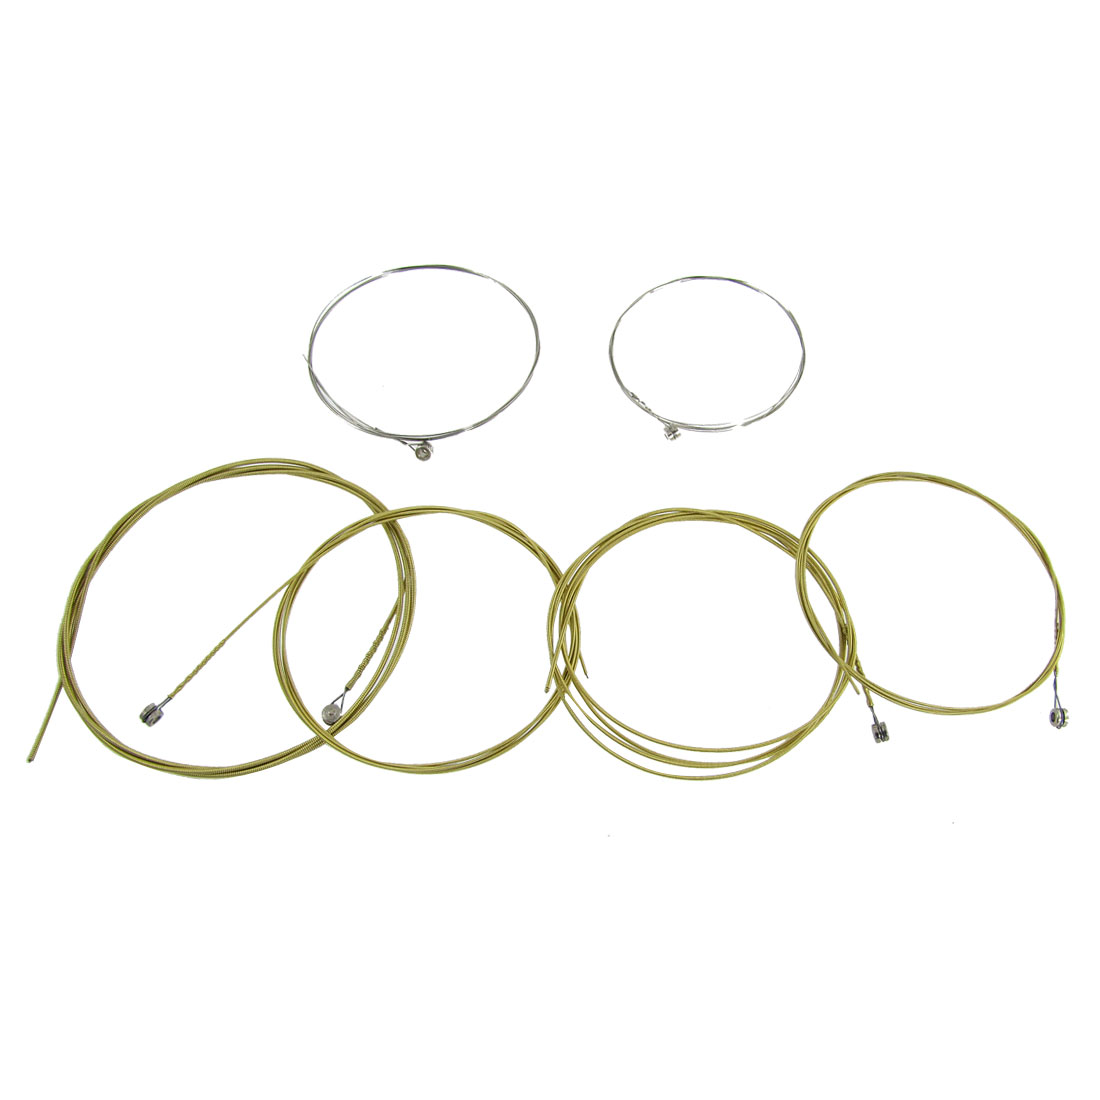 Musical Instruments Replacement 6 Pcs A406 Steel Strings Set for Acoustic Guitar